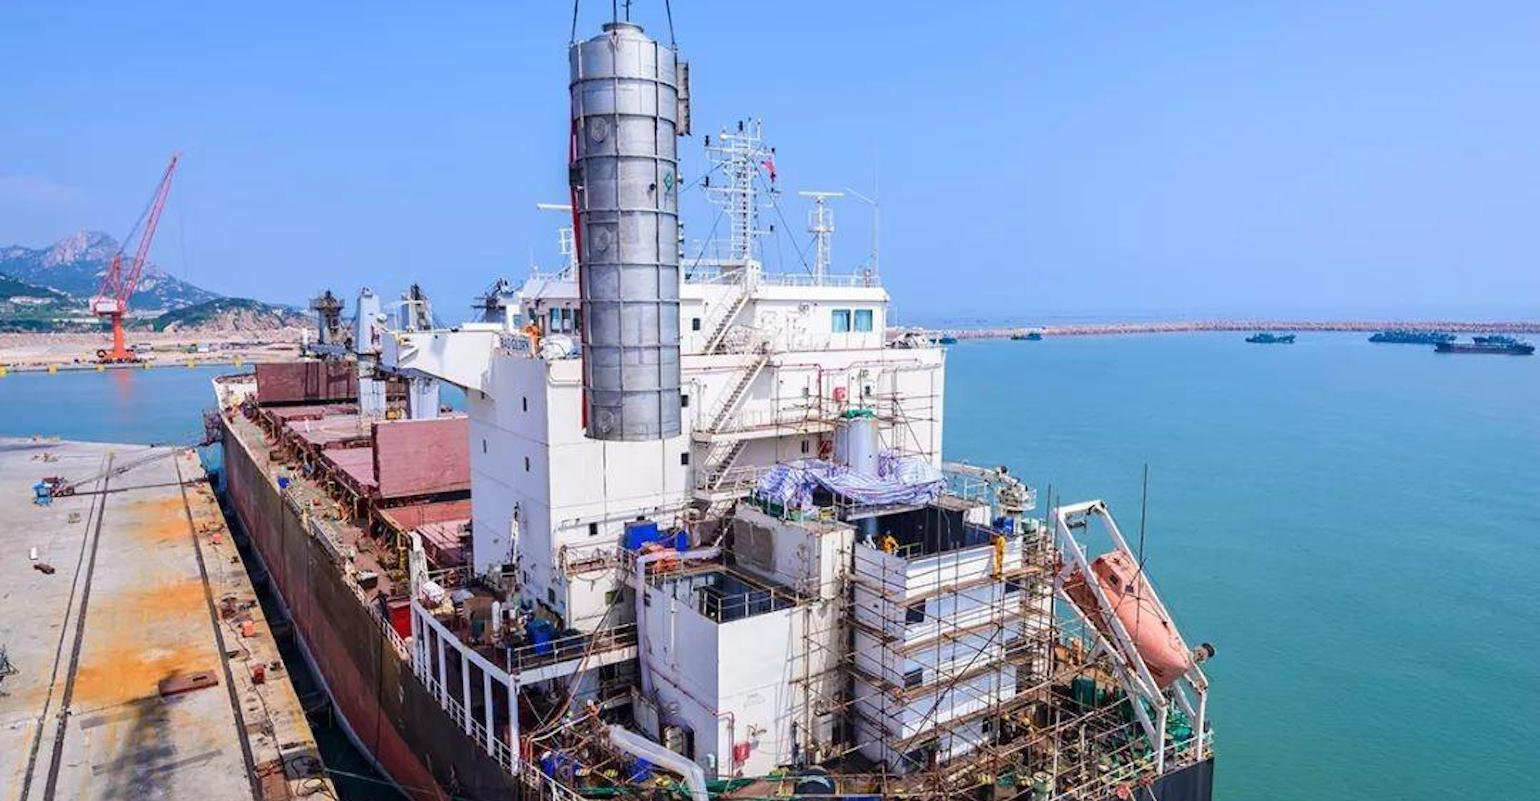 Vessels with scrubbers set for substantial fuel savings on eve of IMO 2020